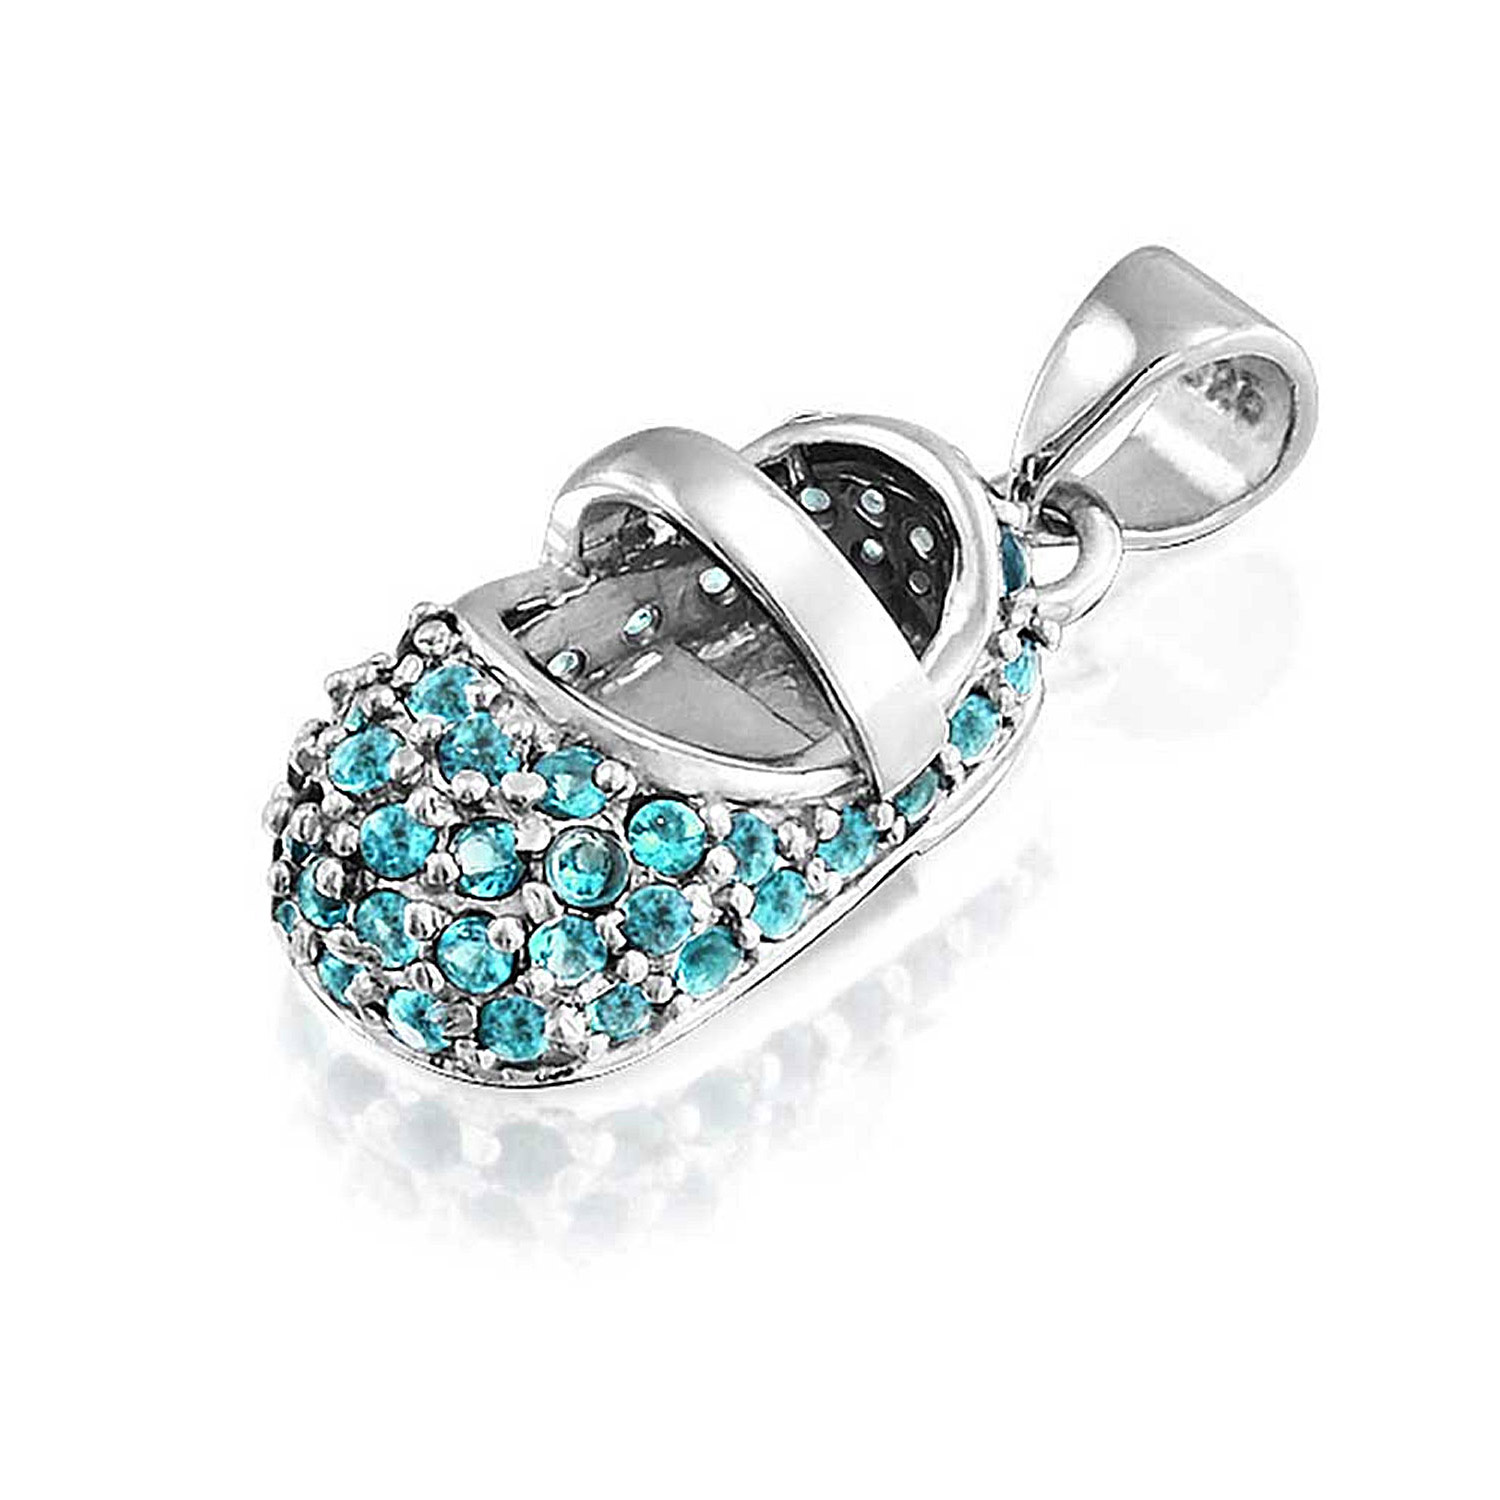 Simulated Aquamairne Baby Shoe Sterling Silver Pendant